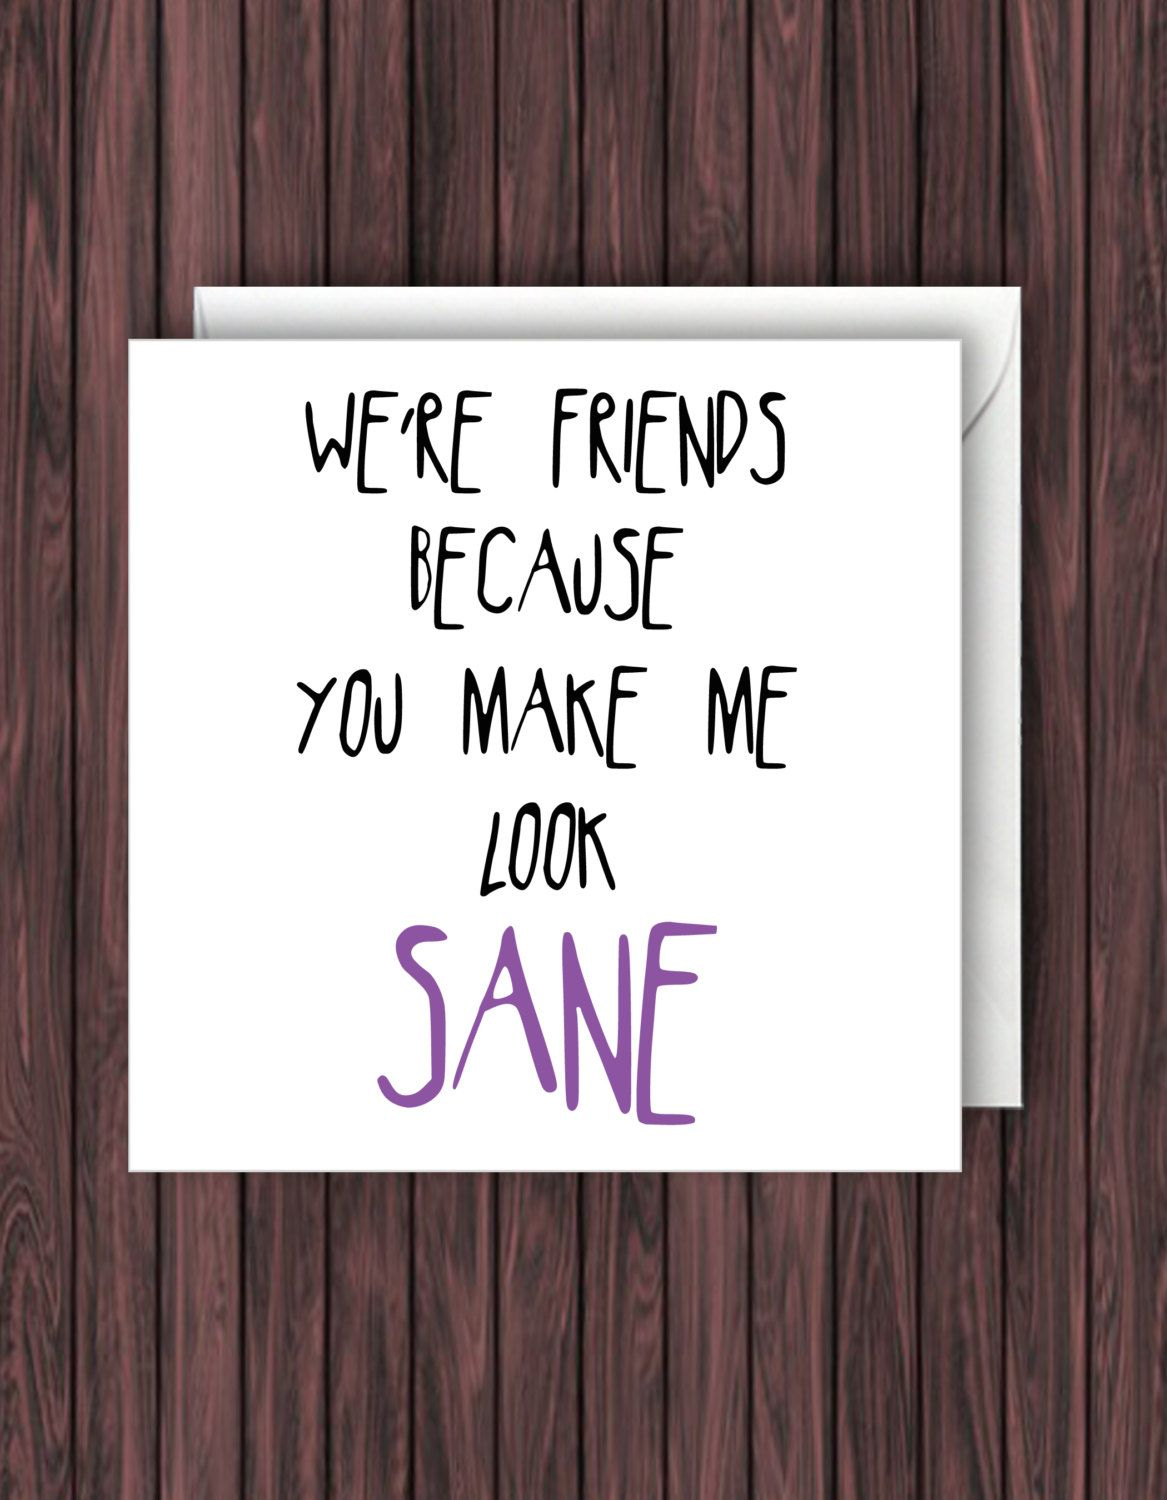 You make look sane friend birthday card funny card friend friend birthday card funny card friend birthday card greeting card kristyandbryce Image collections